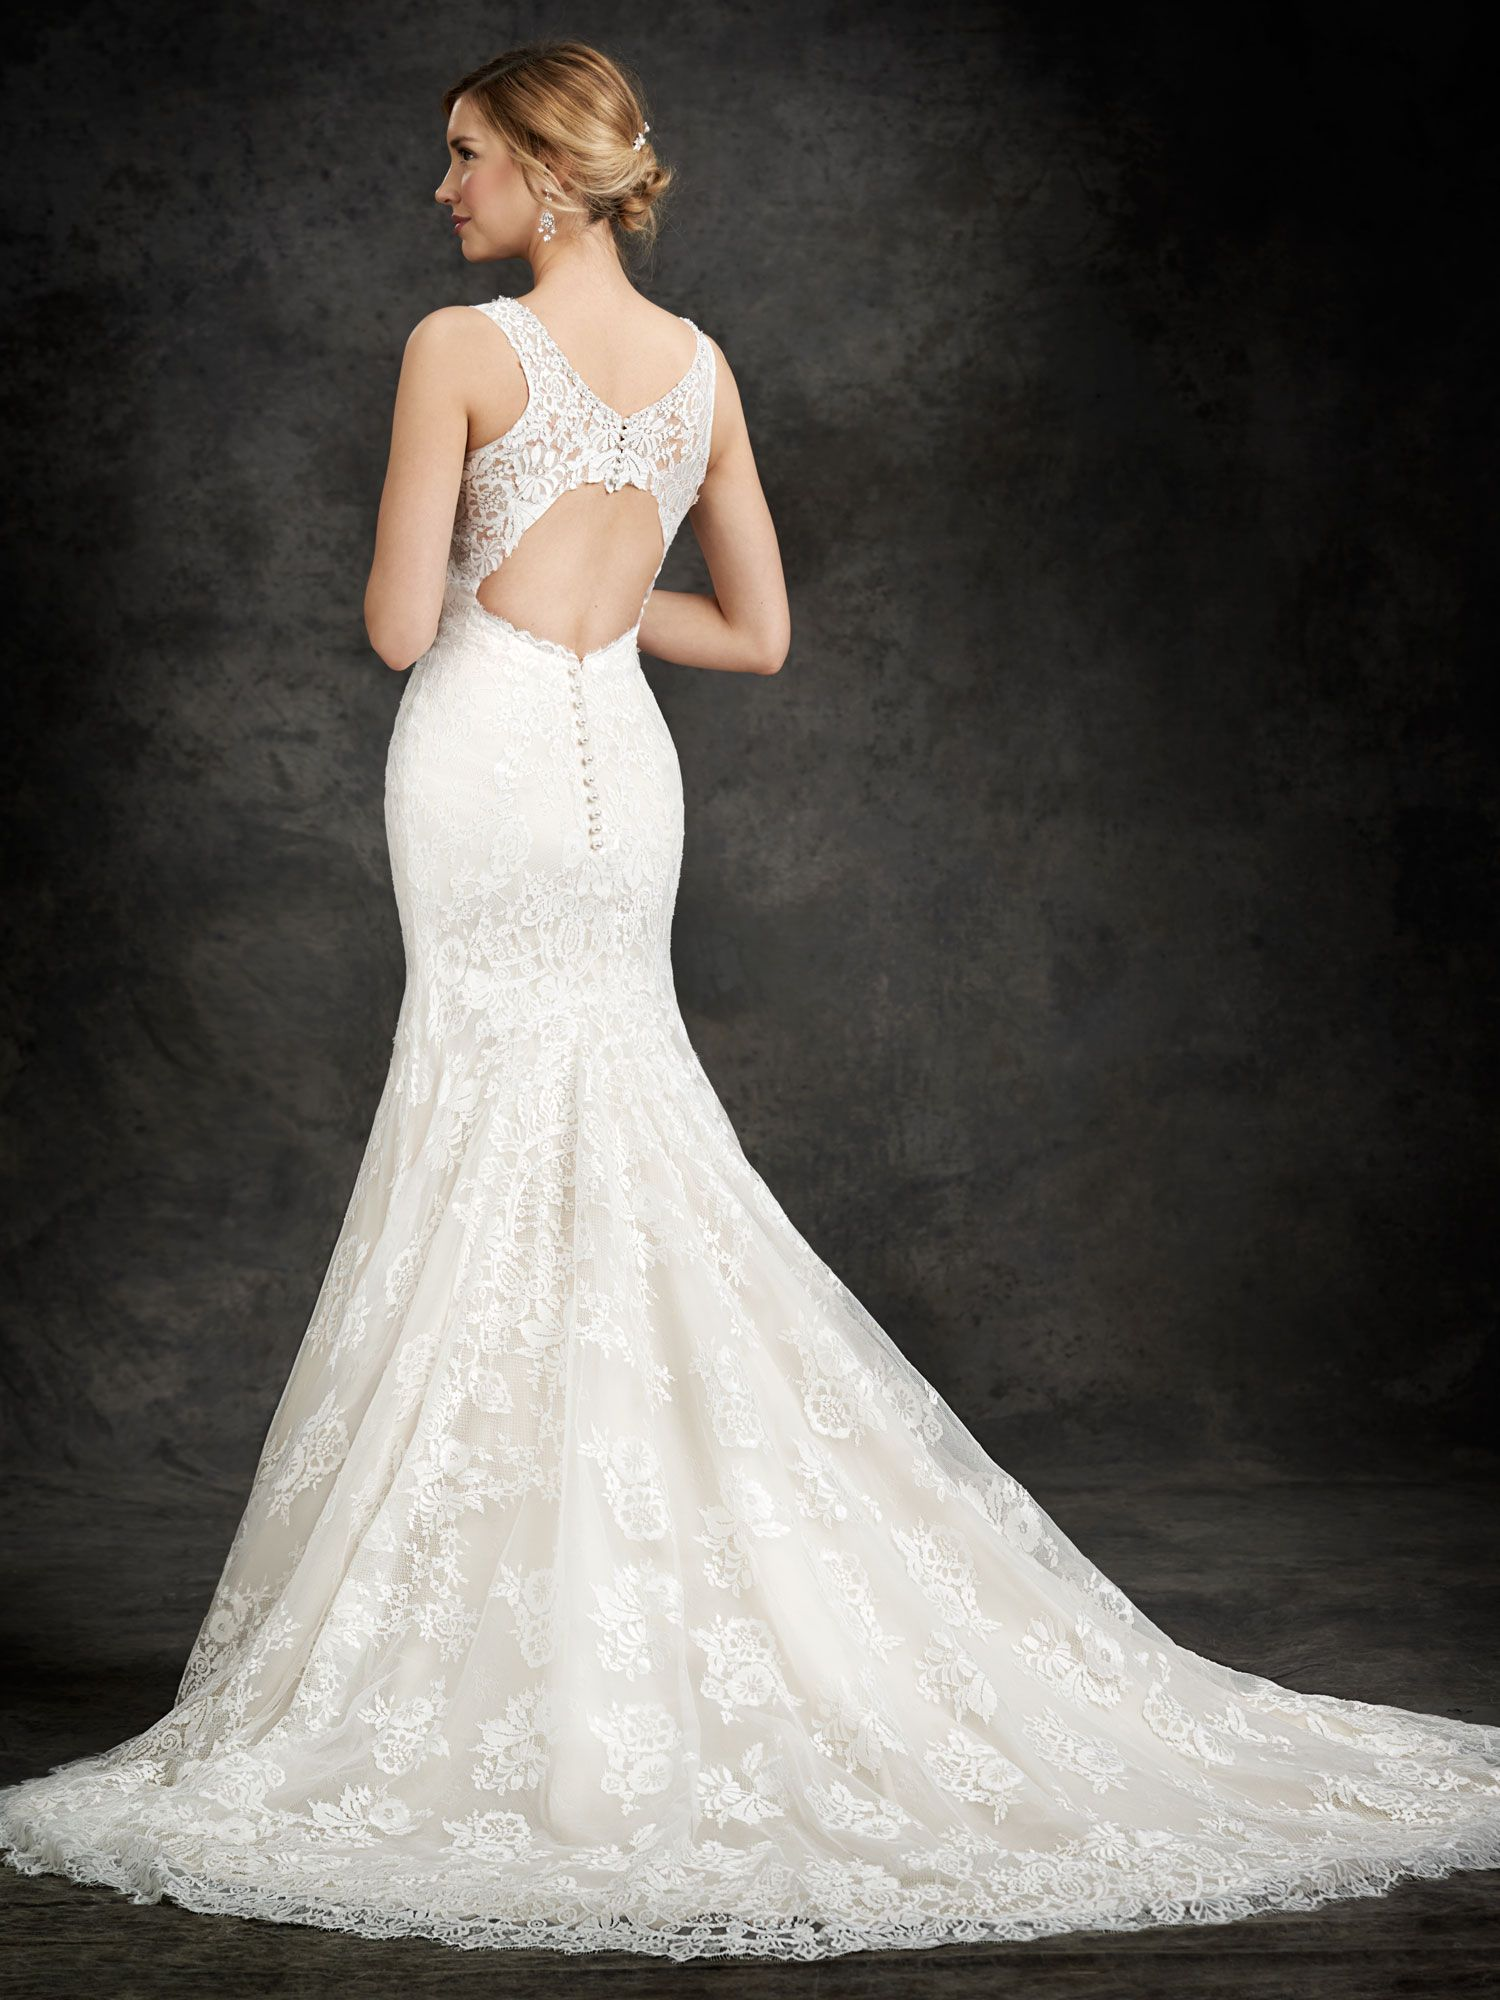 Ella rosa private label by g be back wedding dresses